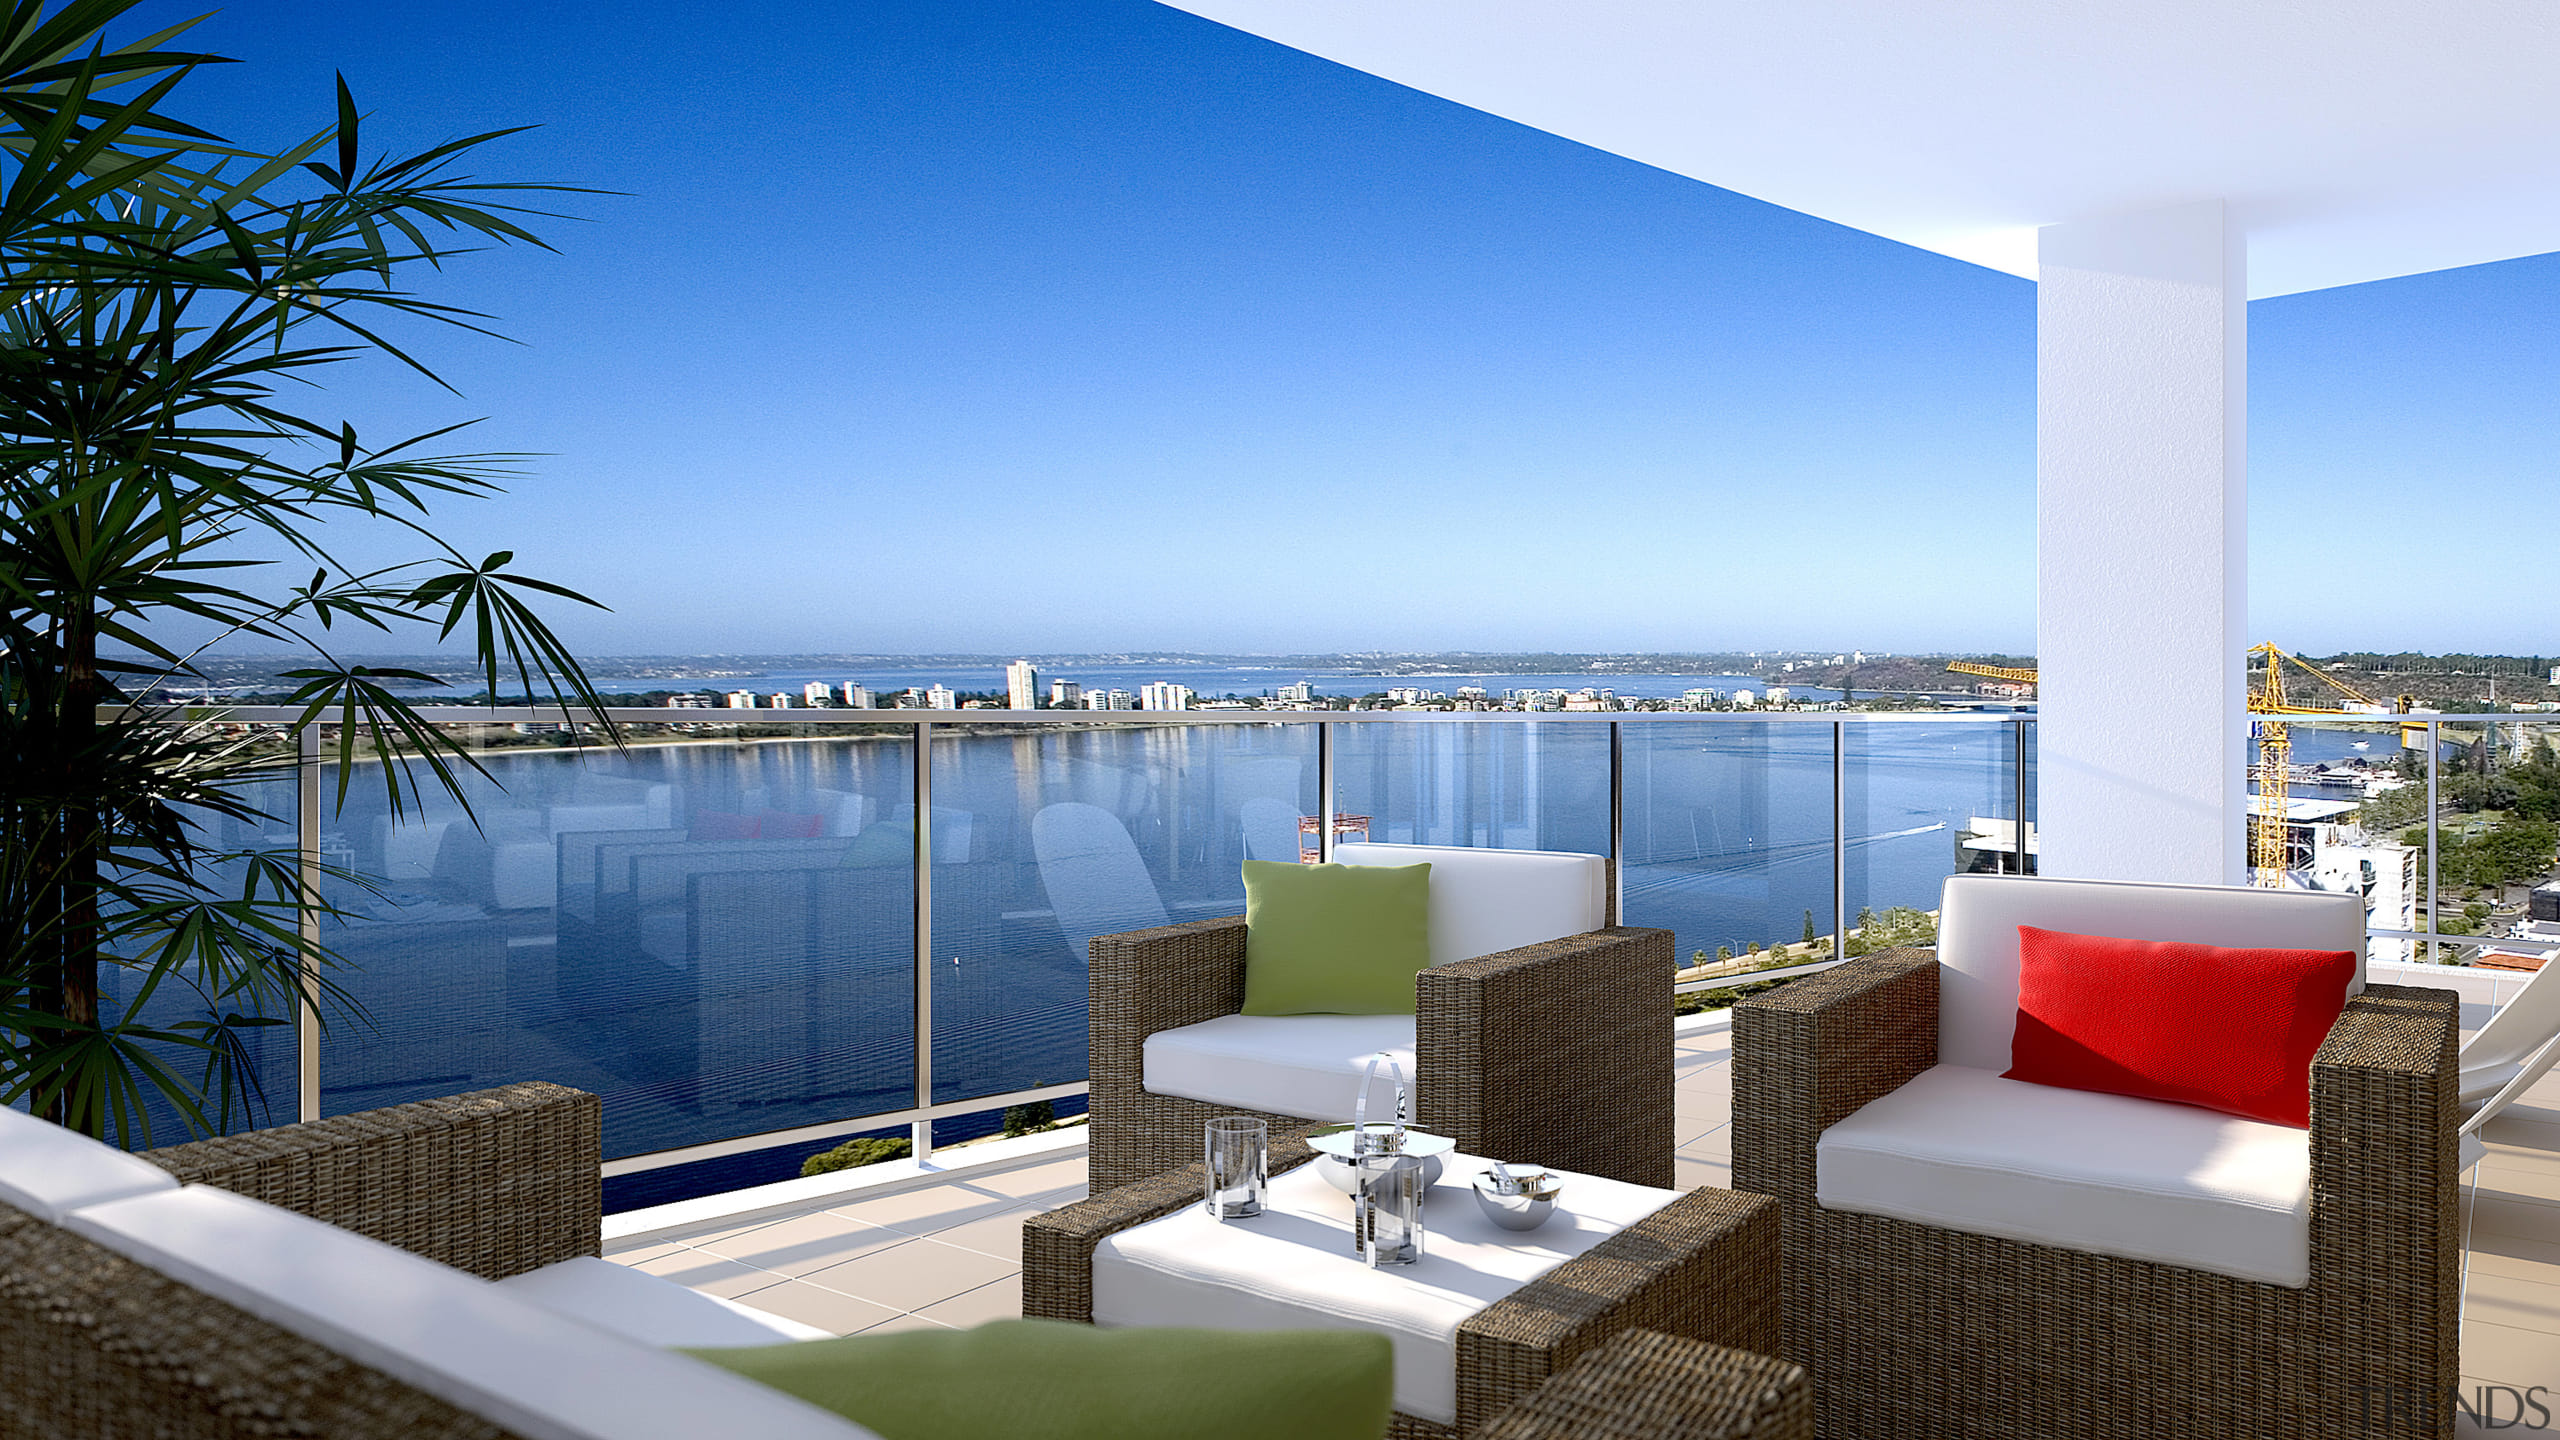 View of the Fairlanes Perth apartment balcony. - apartment, balcony, condominium, estate, home, hotel, leisure, palm tree, penthouse apartment, property, real estate, resort, sea, sky, swimming pool, vacation, villa, teal